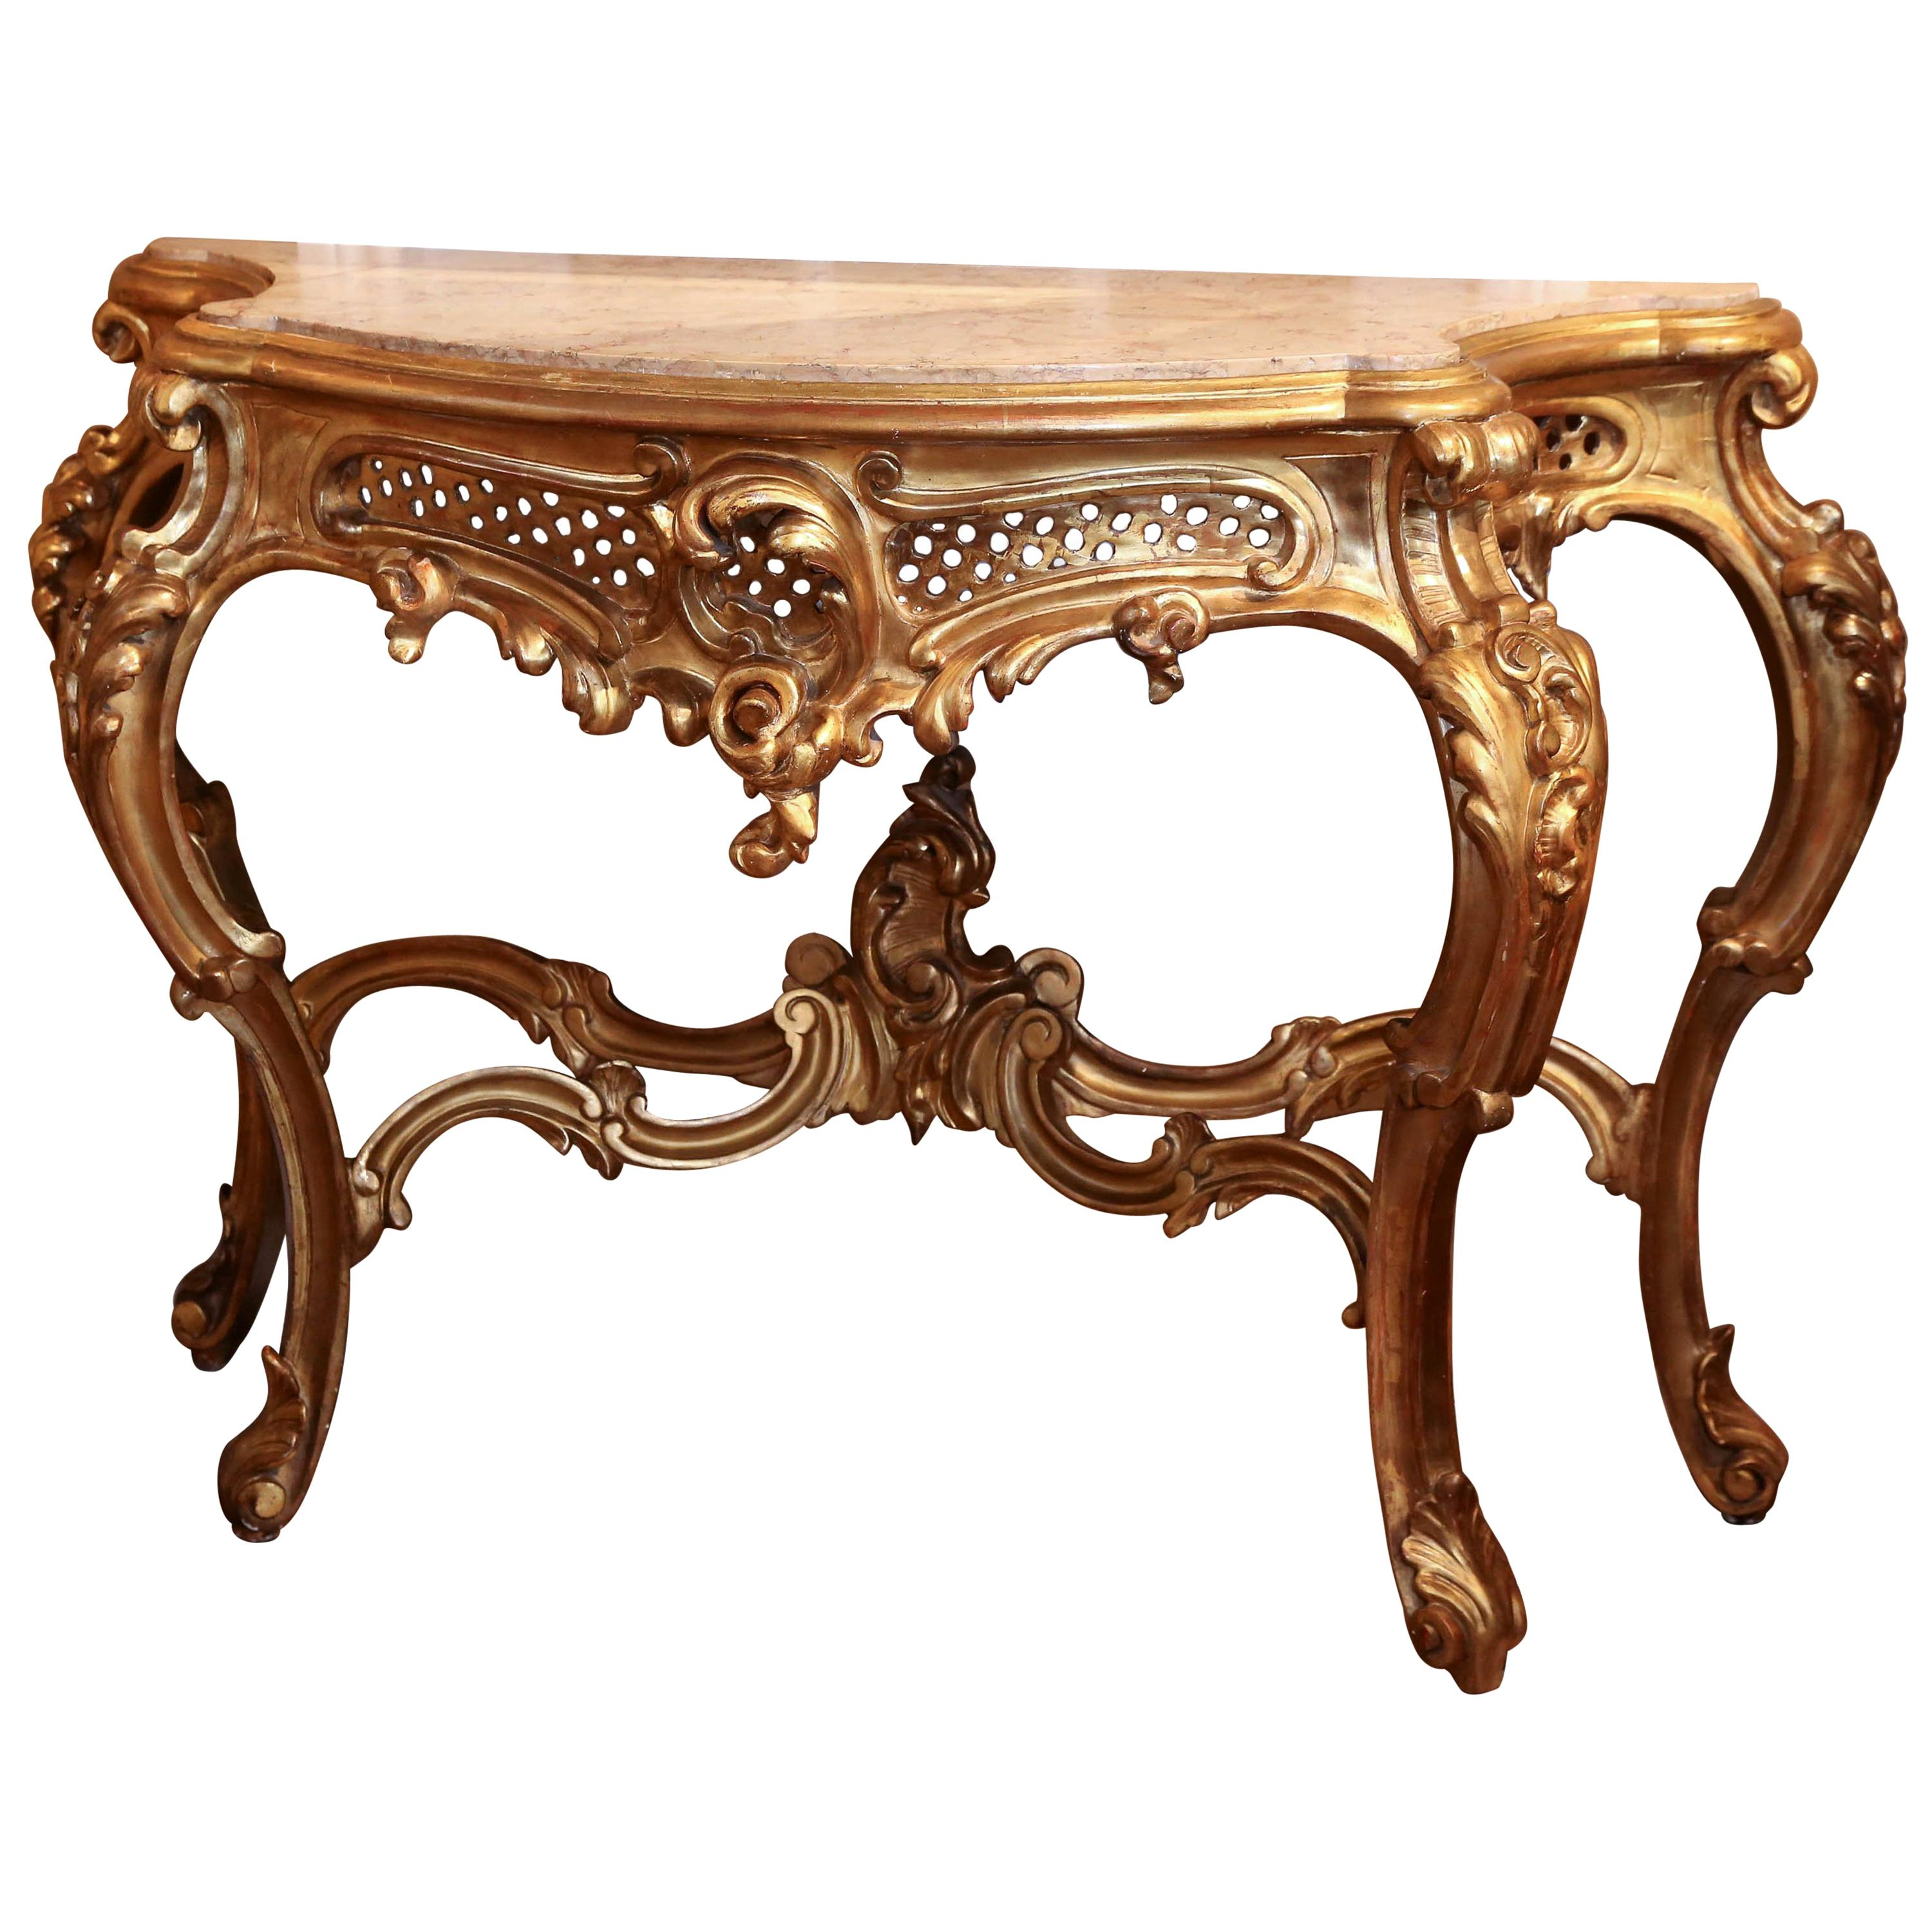 Large Louis XV Style Giltwood Console Table, 19th Century with Marble Top